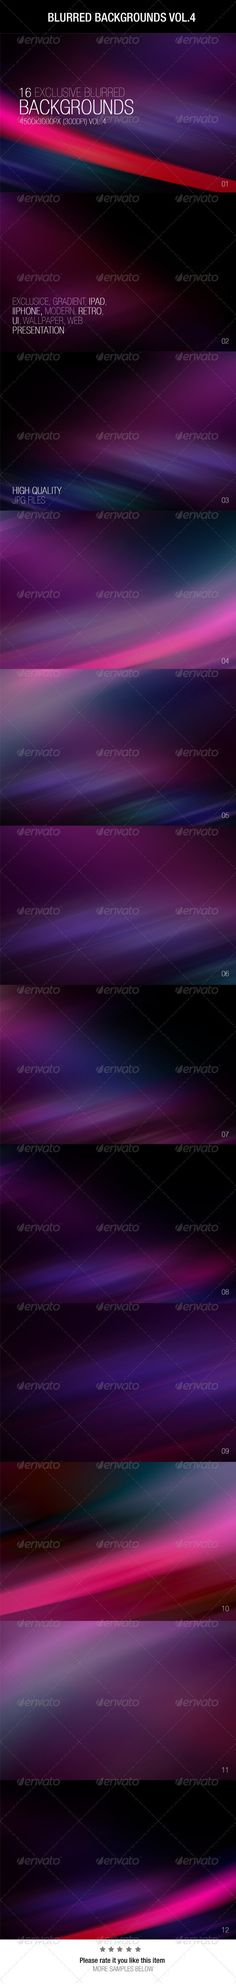 Buy Blurred Backgrounds by Wutip on GraphicRiver. Blurred Backgrounds Very usefull as wallpapers, website backgrounds, product backgrounds, UI presentations and . Creative Typography Design, Ipad, Blurred Background, Information Graphics, Iphone, Presentation, Graphic Design, Colorful, Abstract